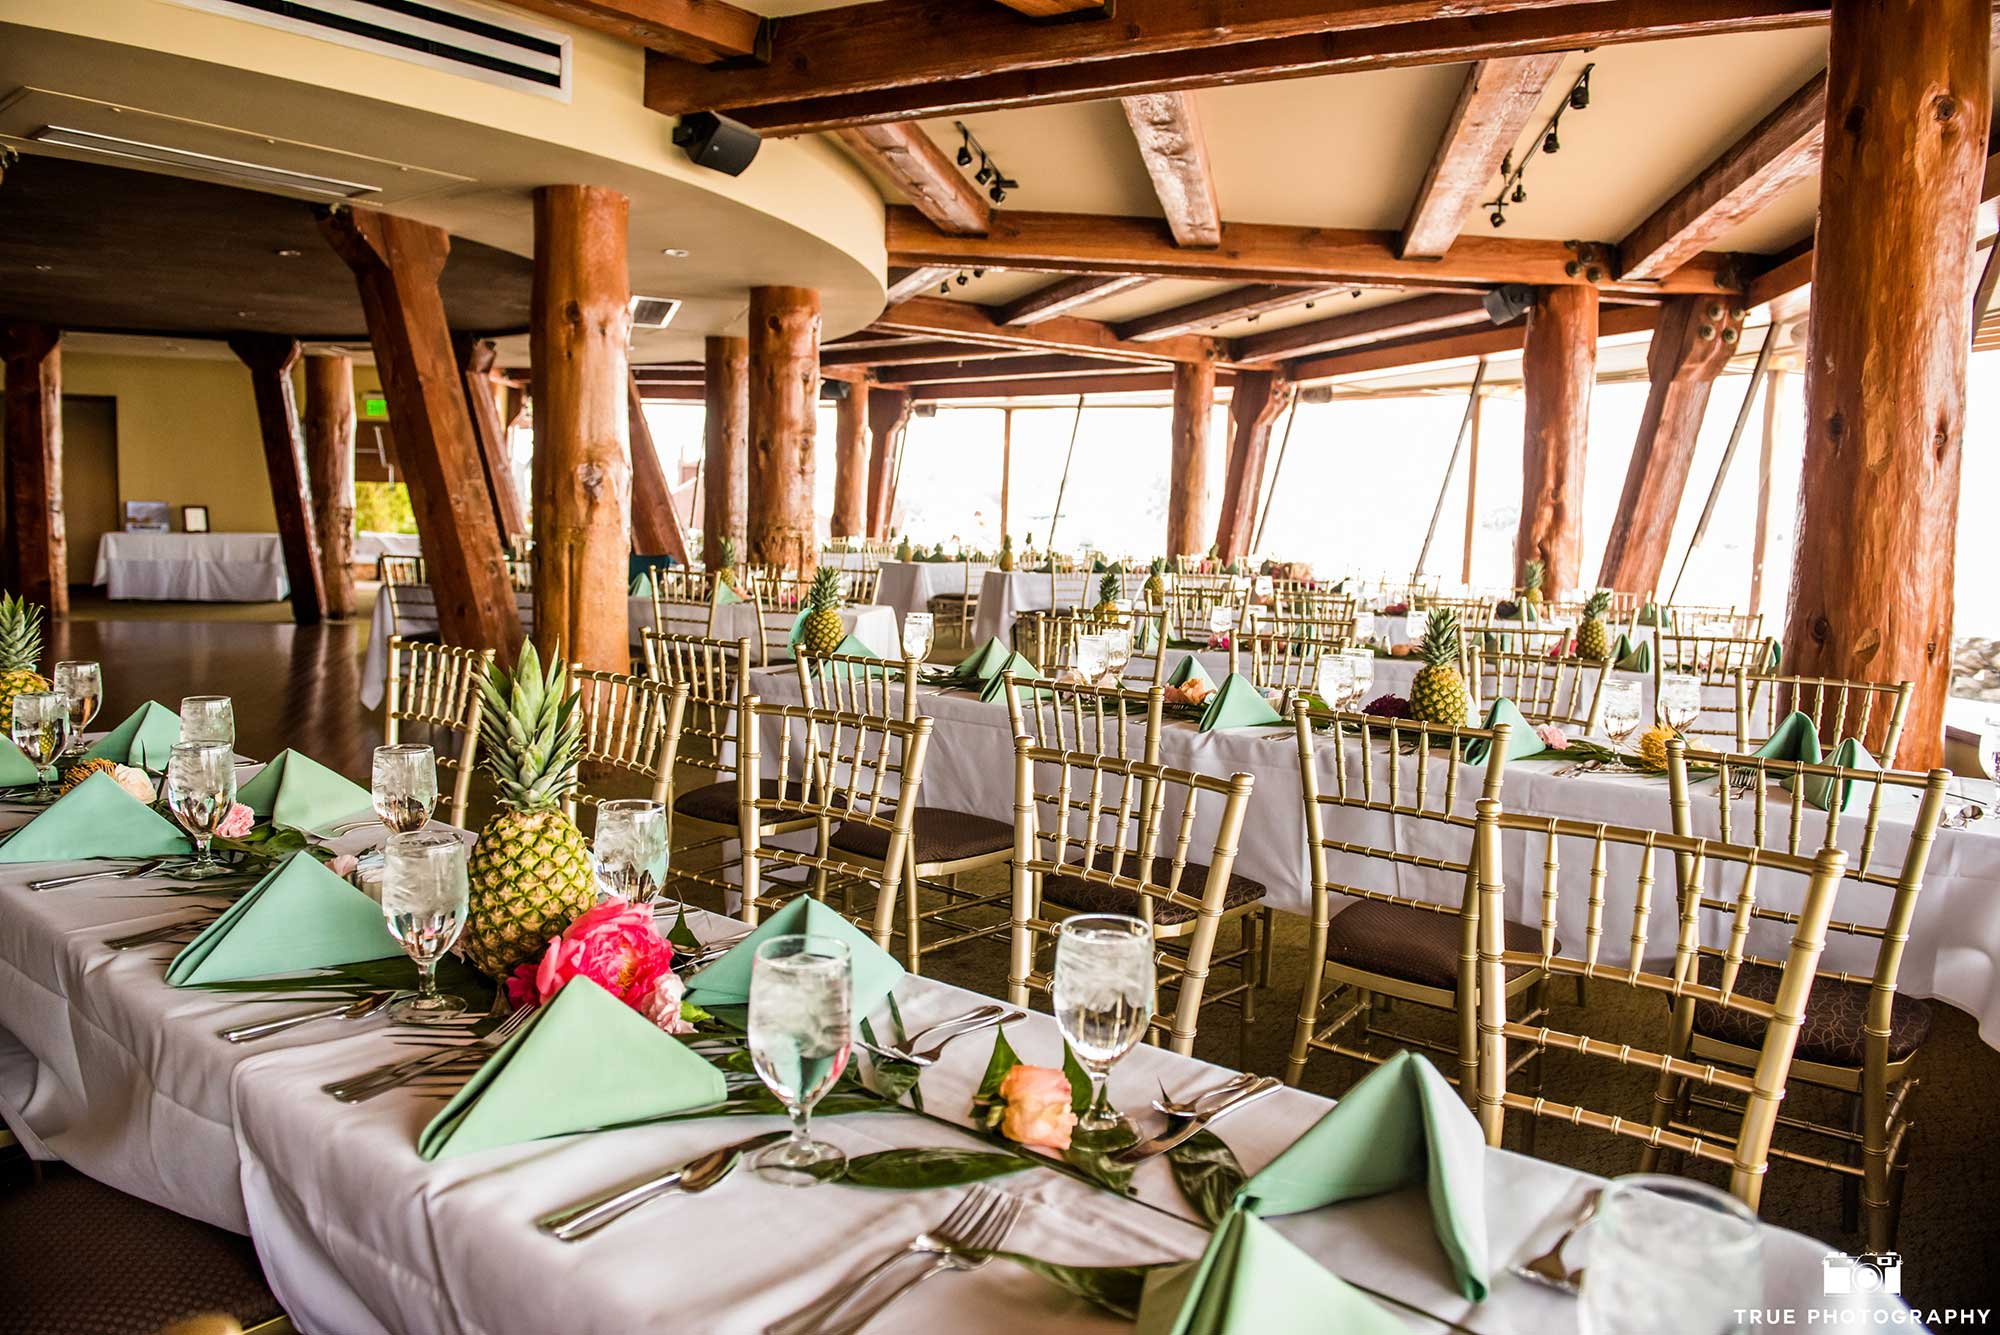 A wedding dining room by the water